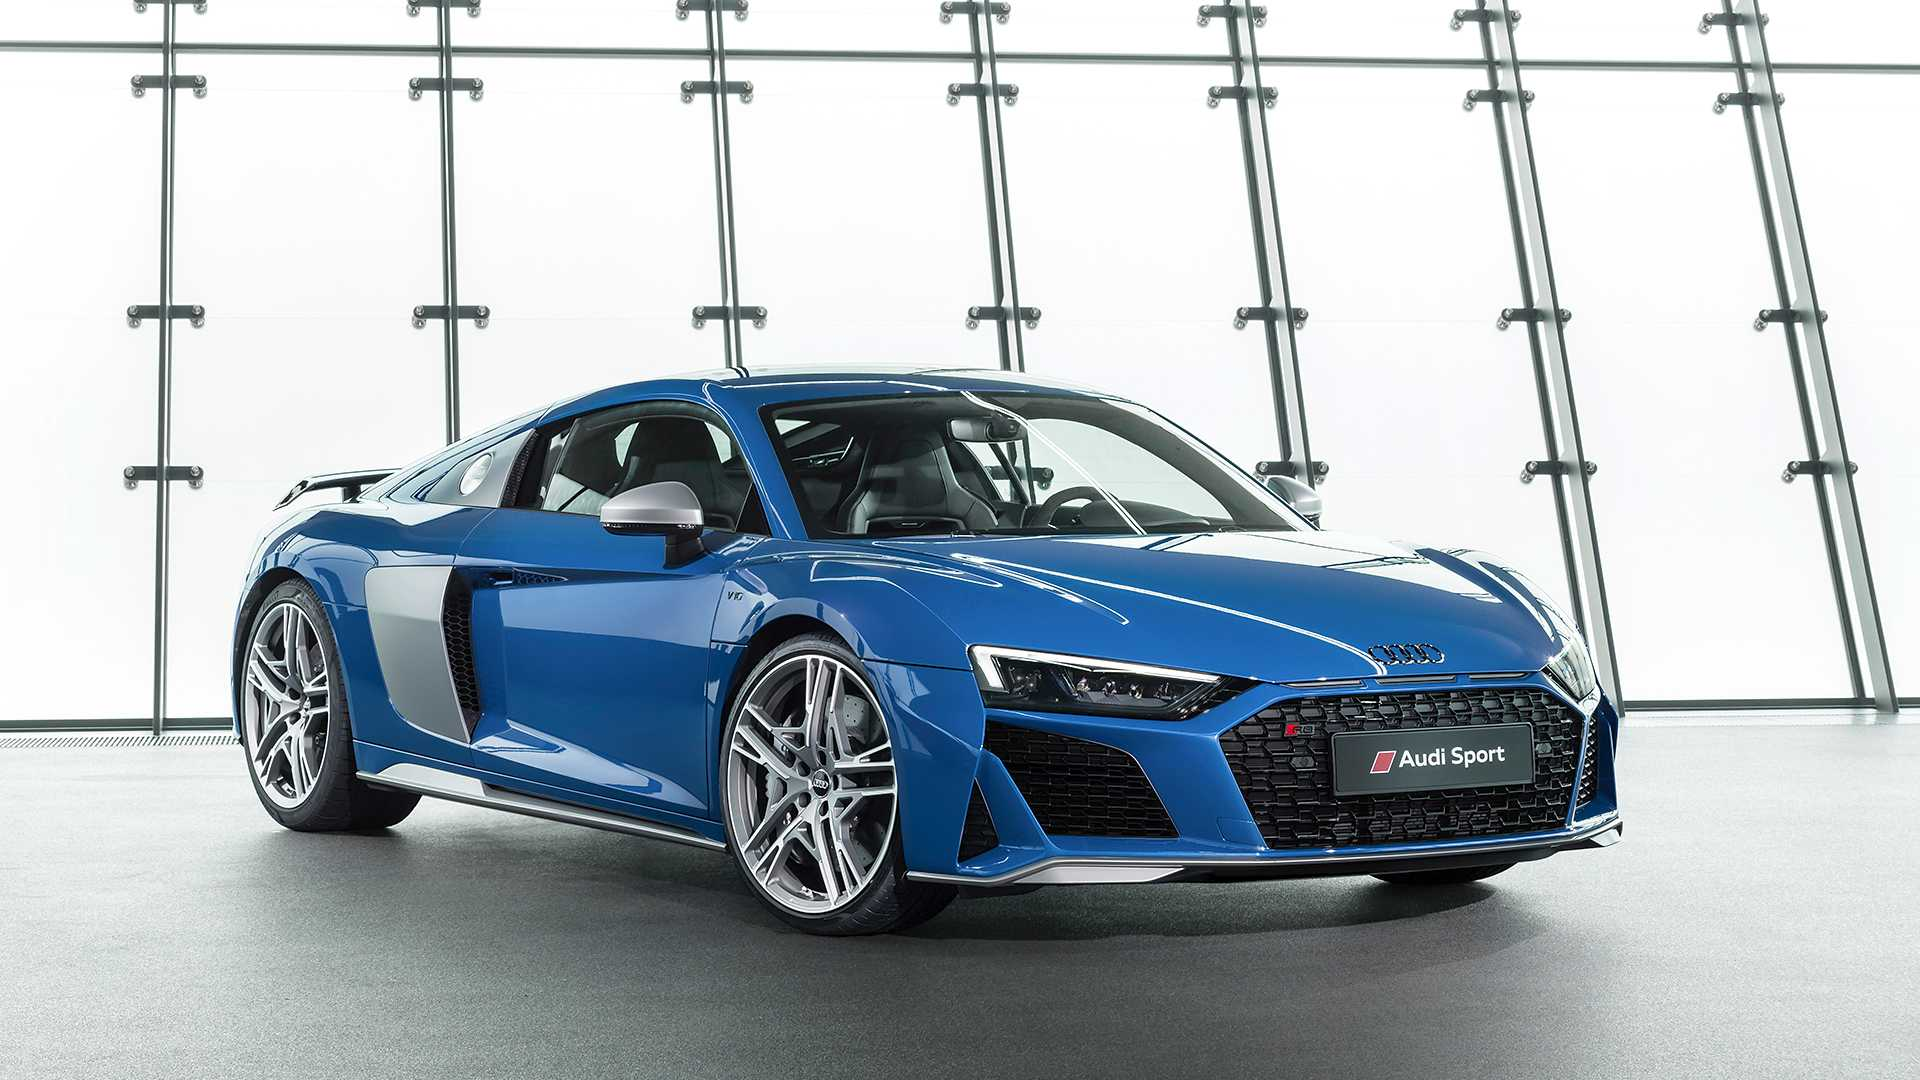 Audi R Sportback Rendered As The Practical Supercar on Audi Rs8